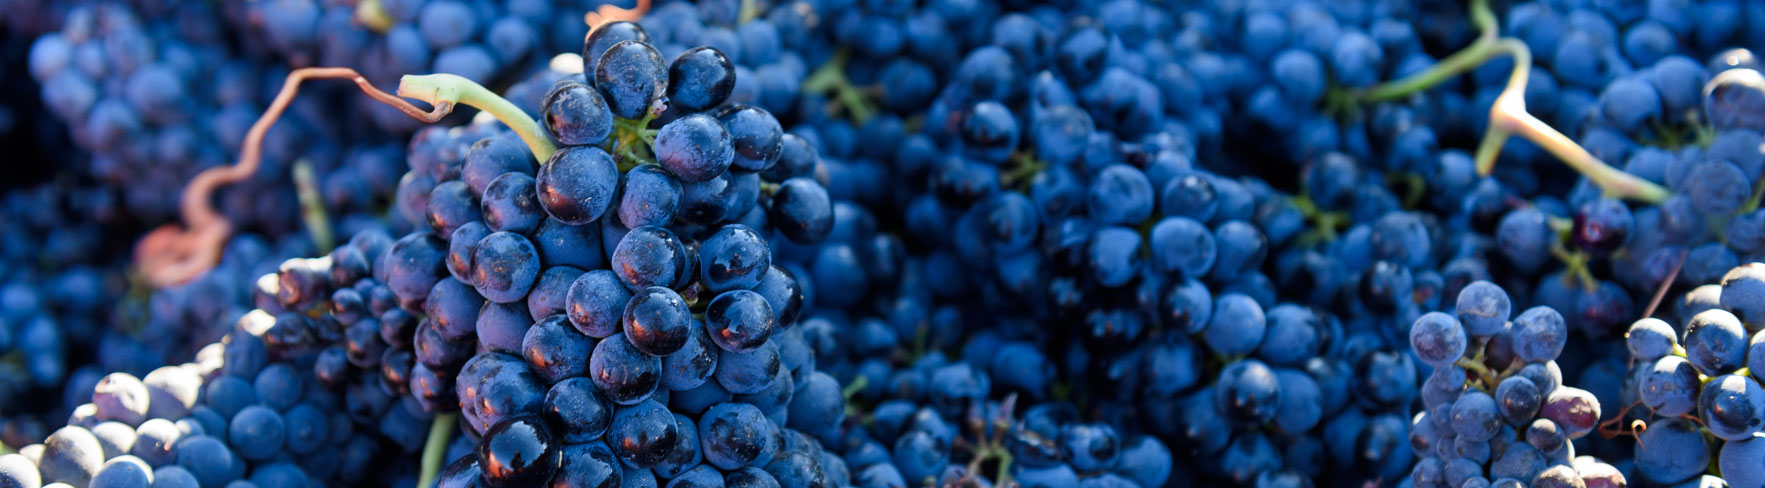 bright blue grapes after picking of barbeyrolles vineyard in France